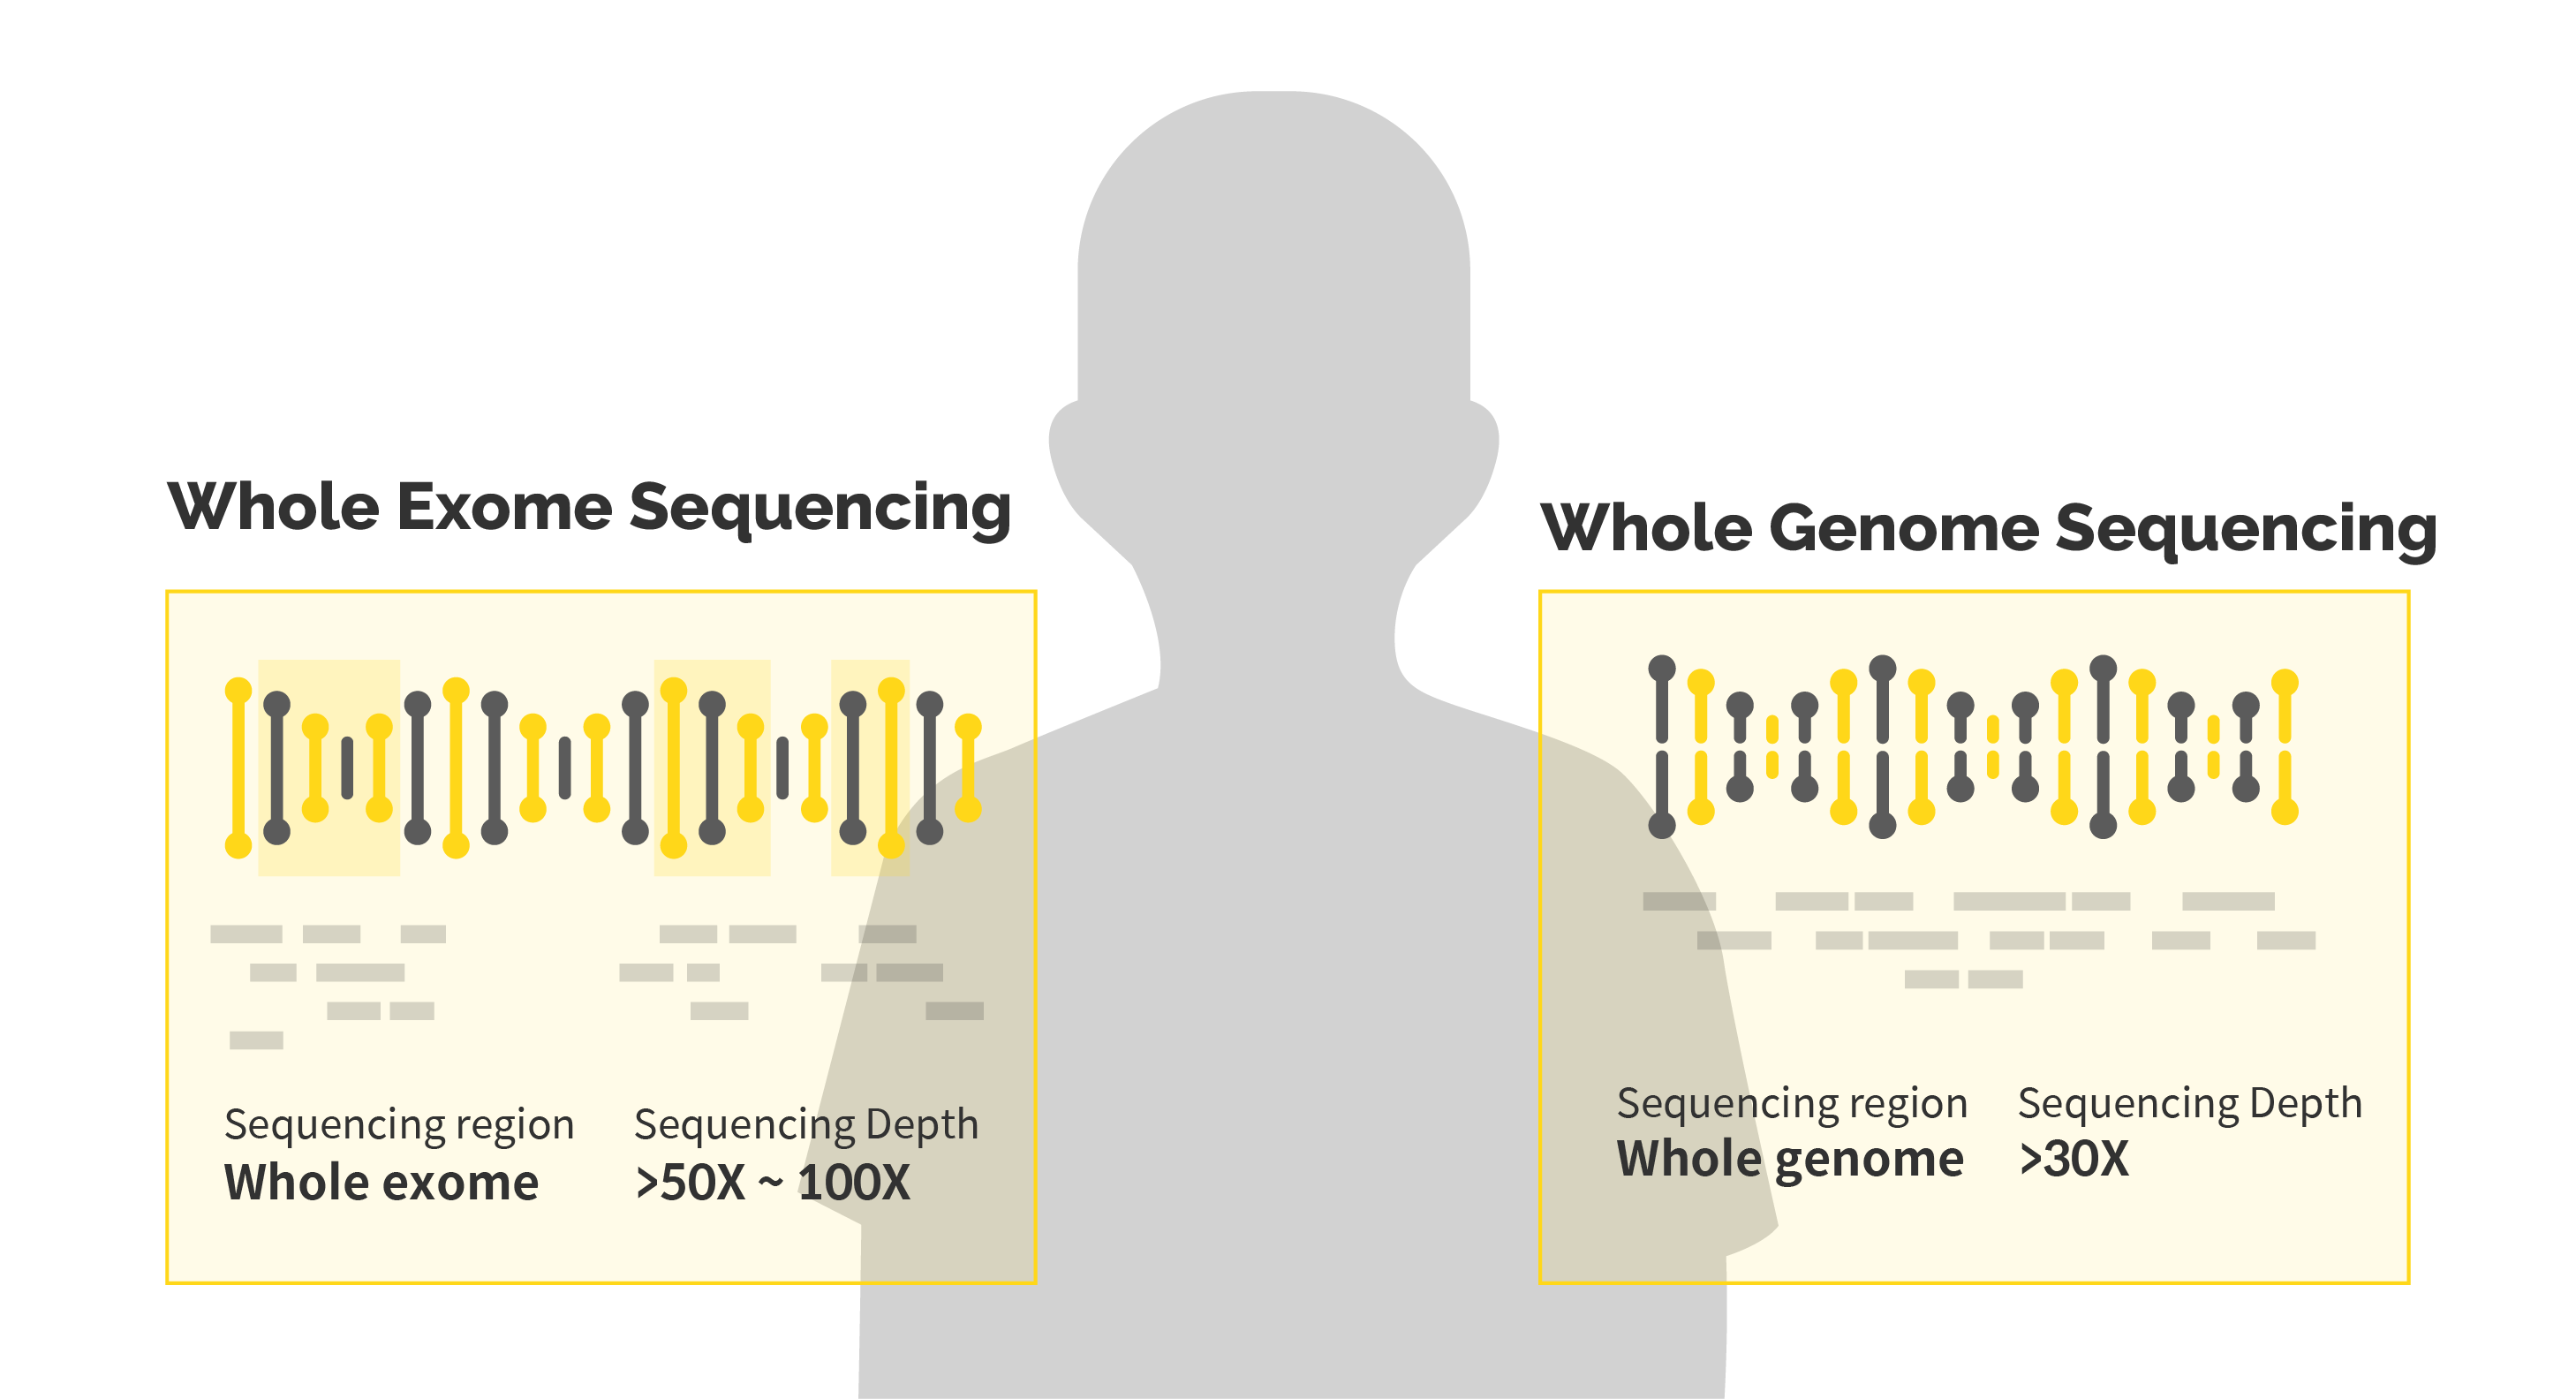 Two DNA double helix explaining whole exome sequencing and whole genome sequencing